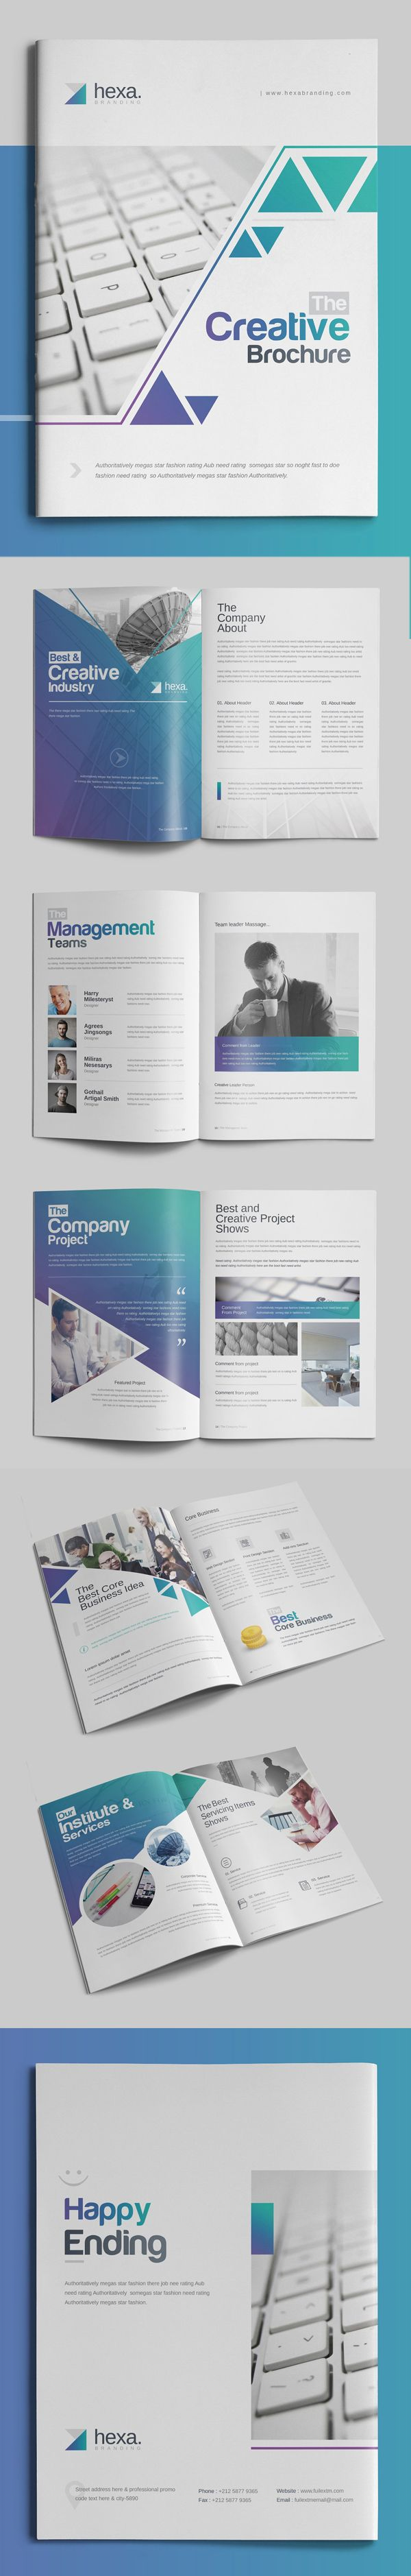 Corporate Brochure Template     #annualreport #bestof #booklet #brochuredesign #brochuretemplates #catalogdesign #portfoliobrochure